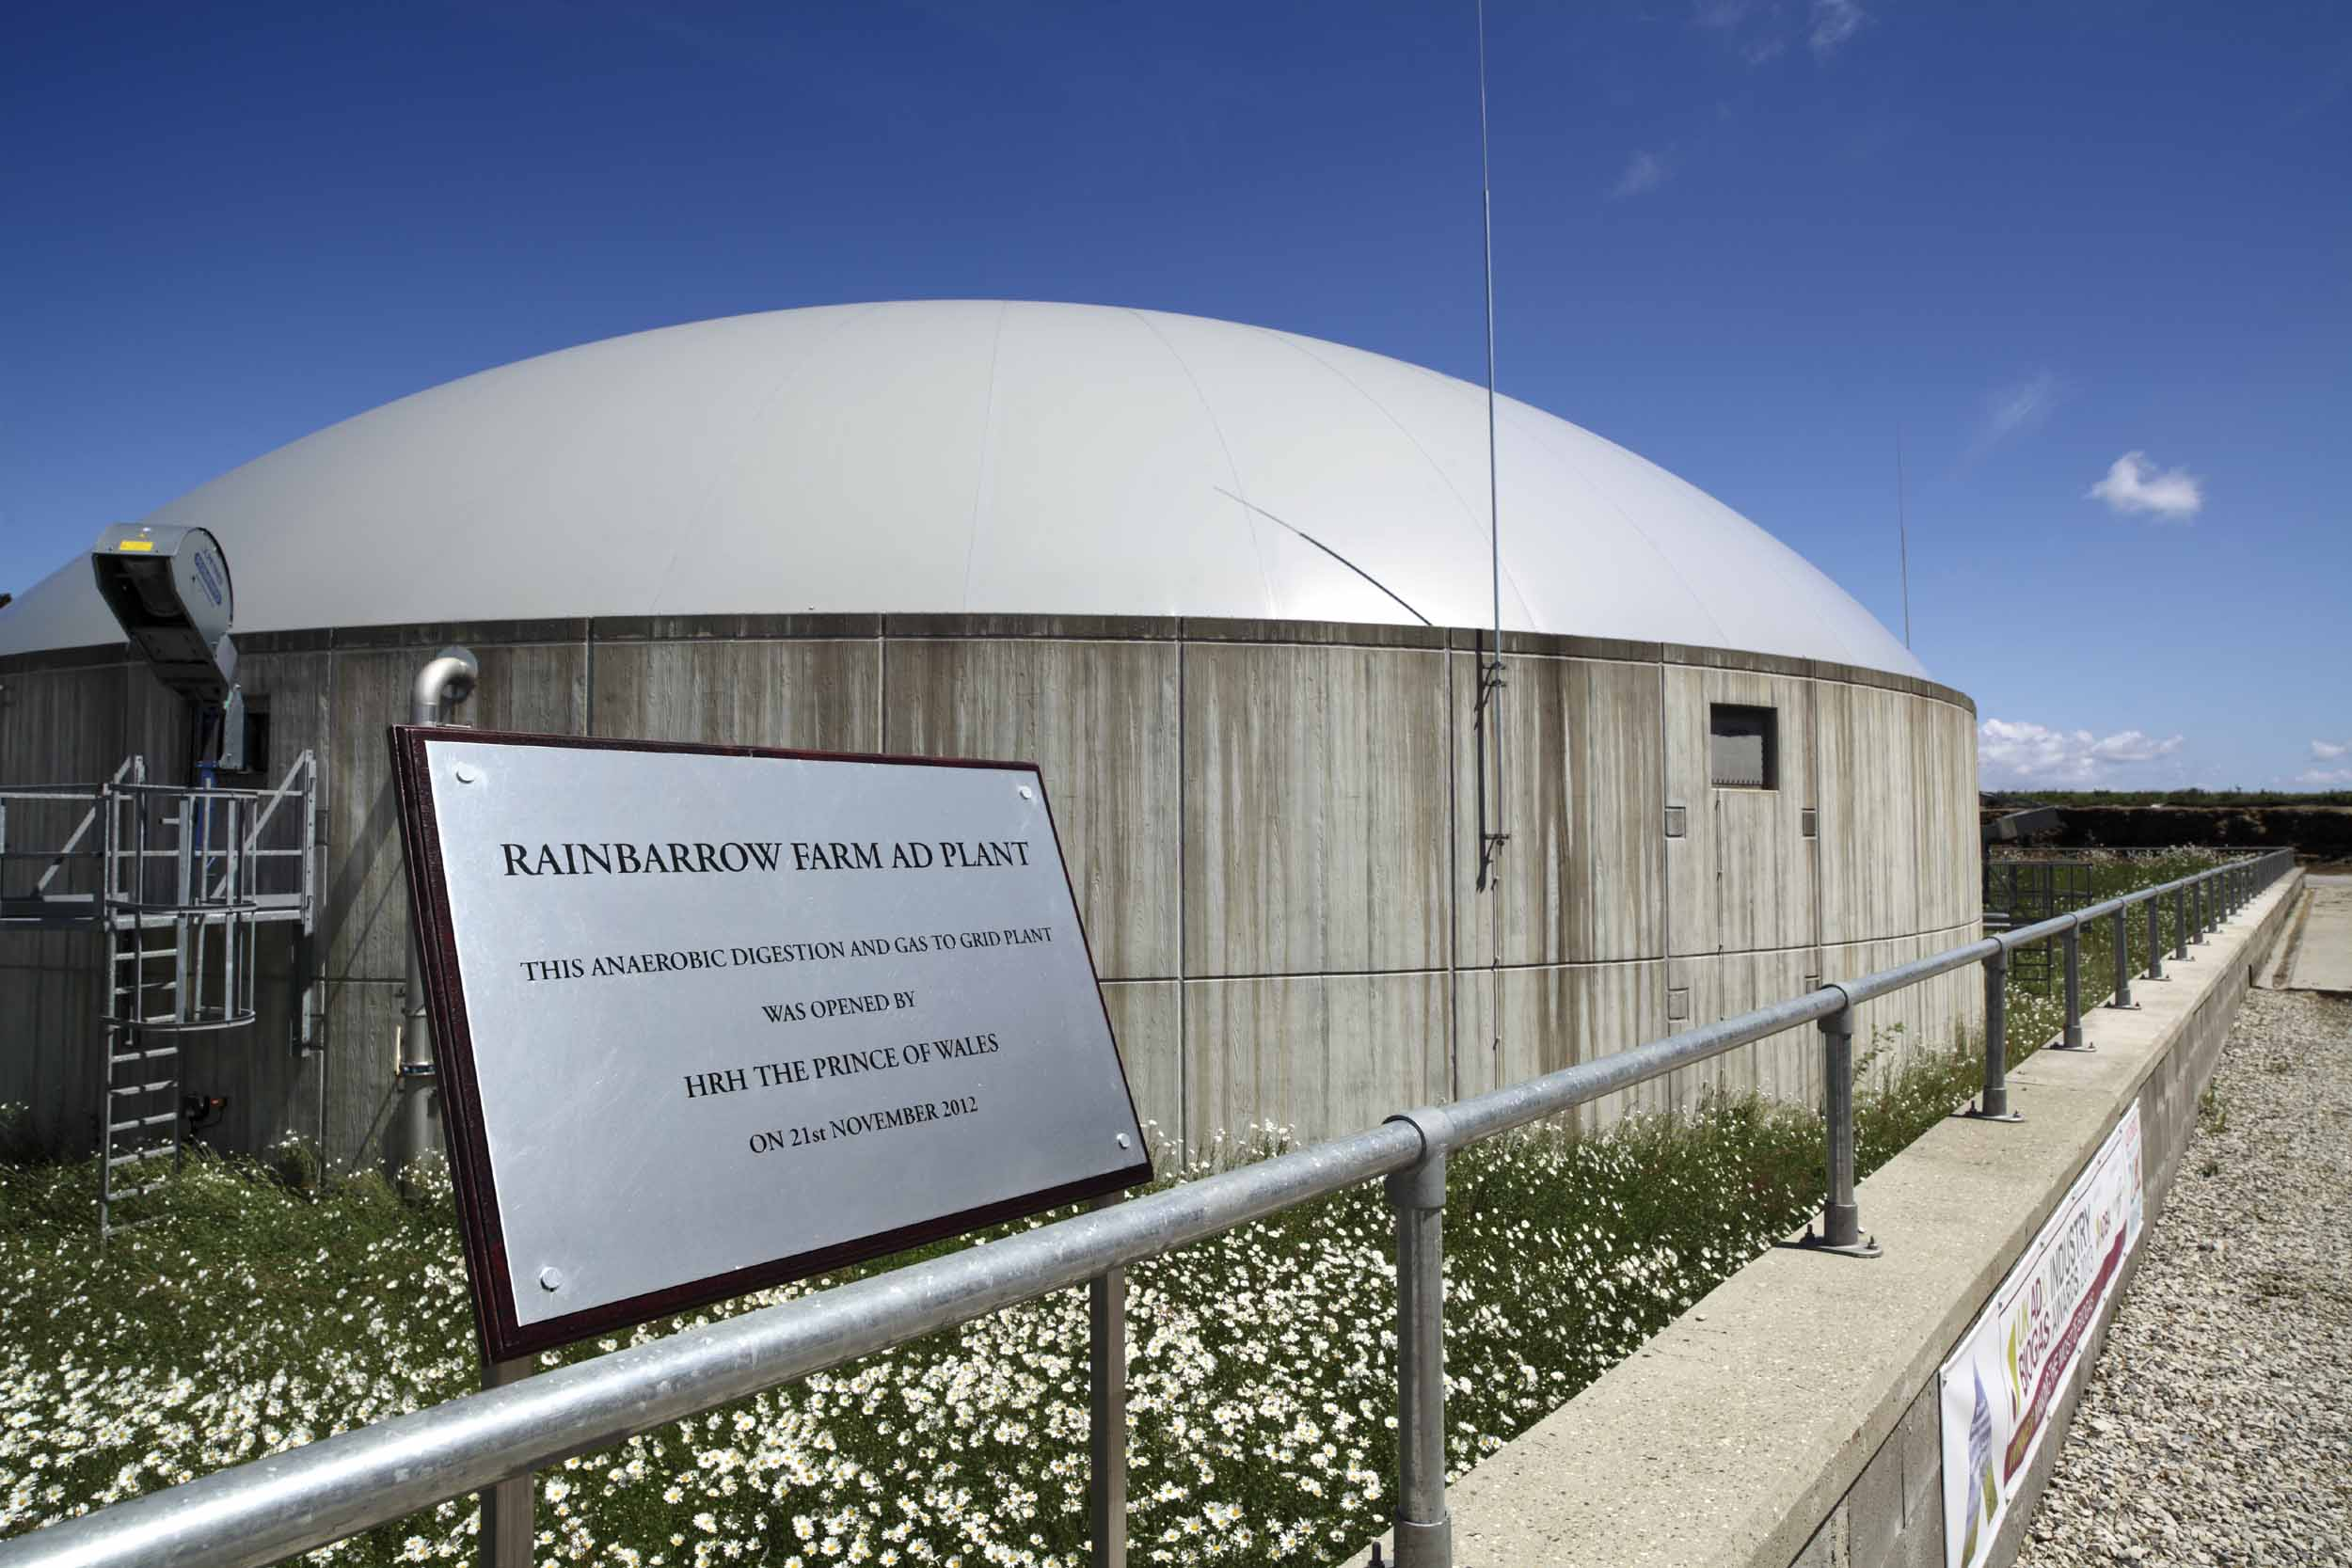 The UK's first anaerobic digestion plant to inject biomethane into the national gas network